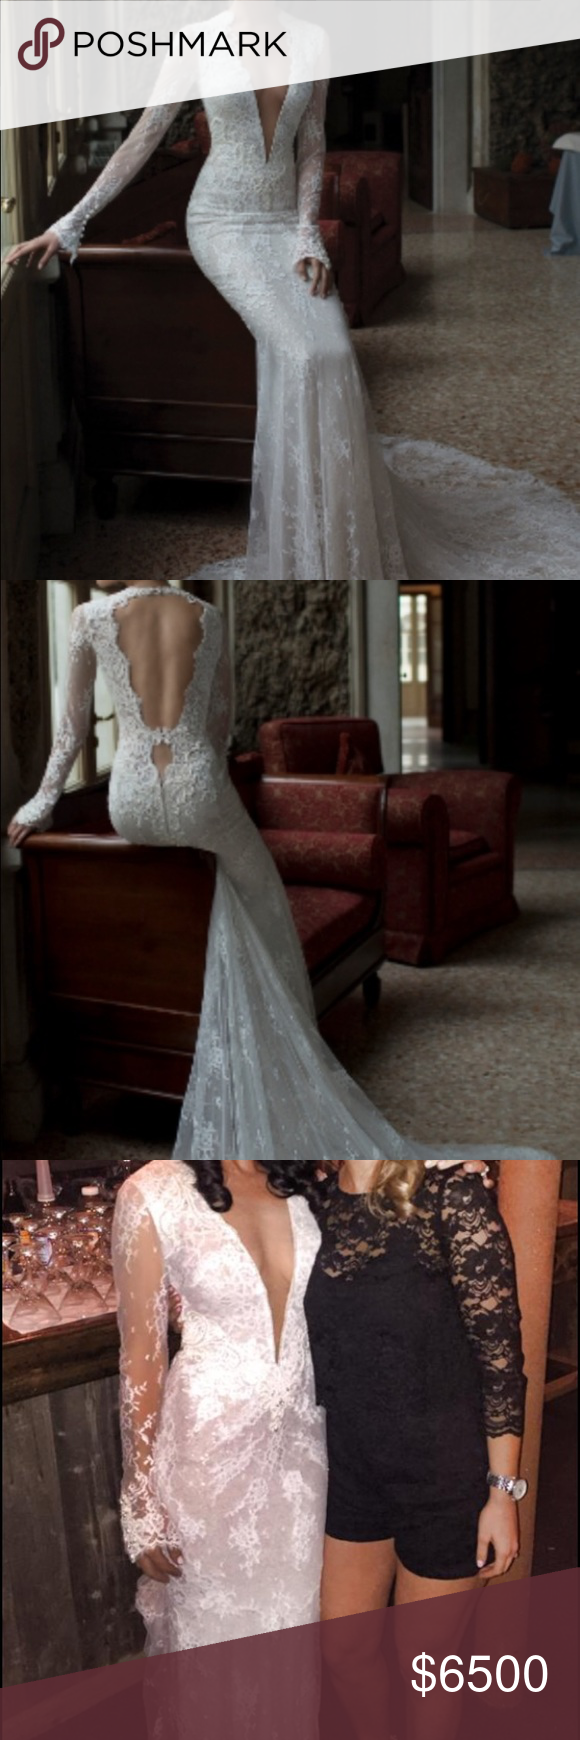 Wedding dress shops in deira dubai  Lilian RAJCIC lilianrajcic on Pinterest